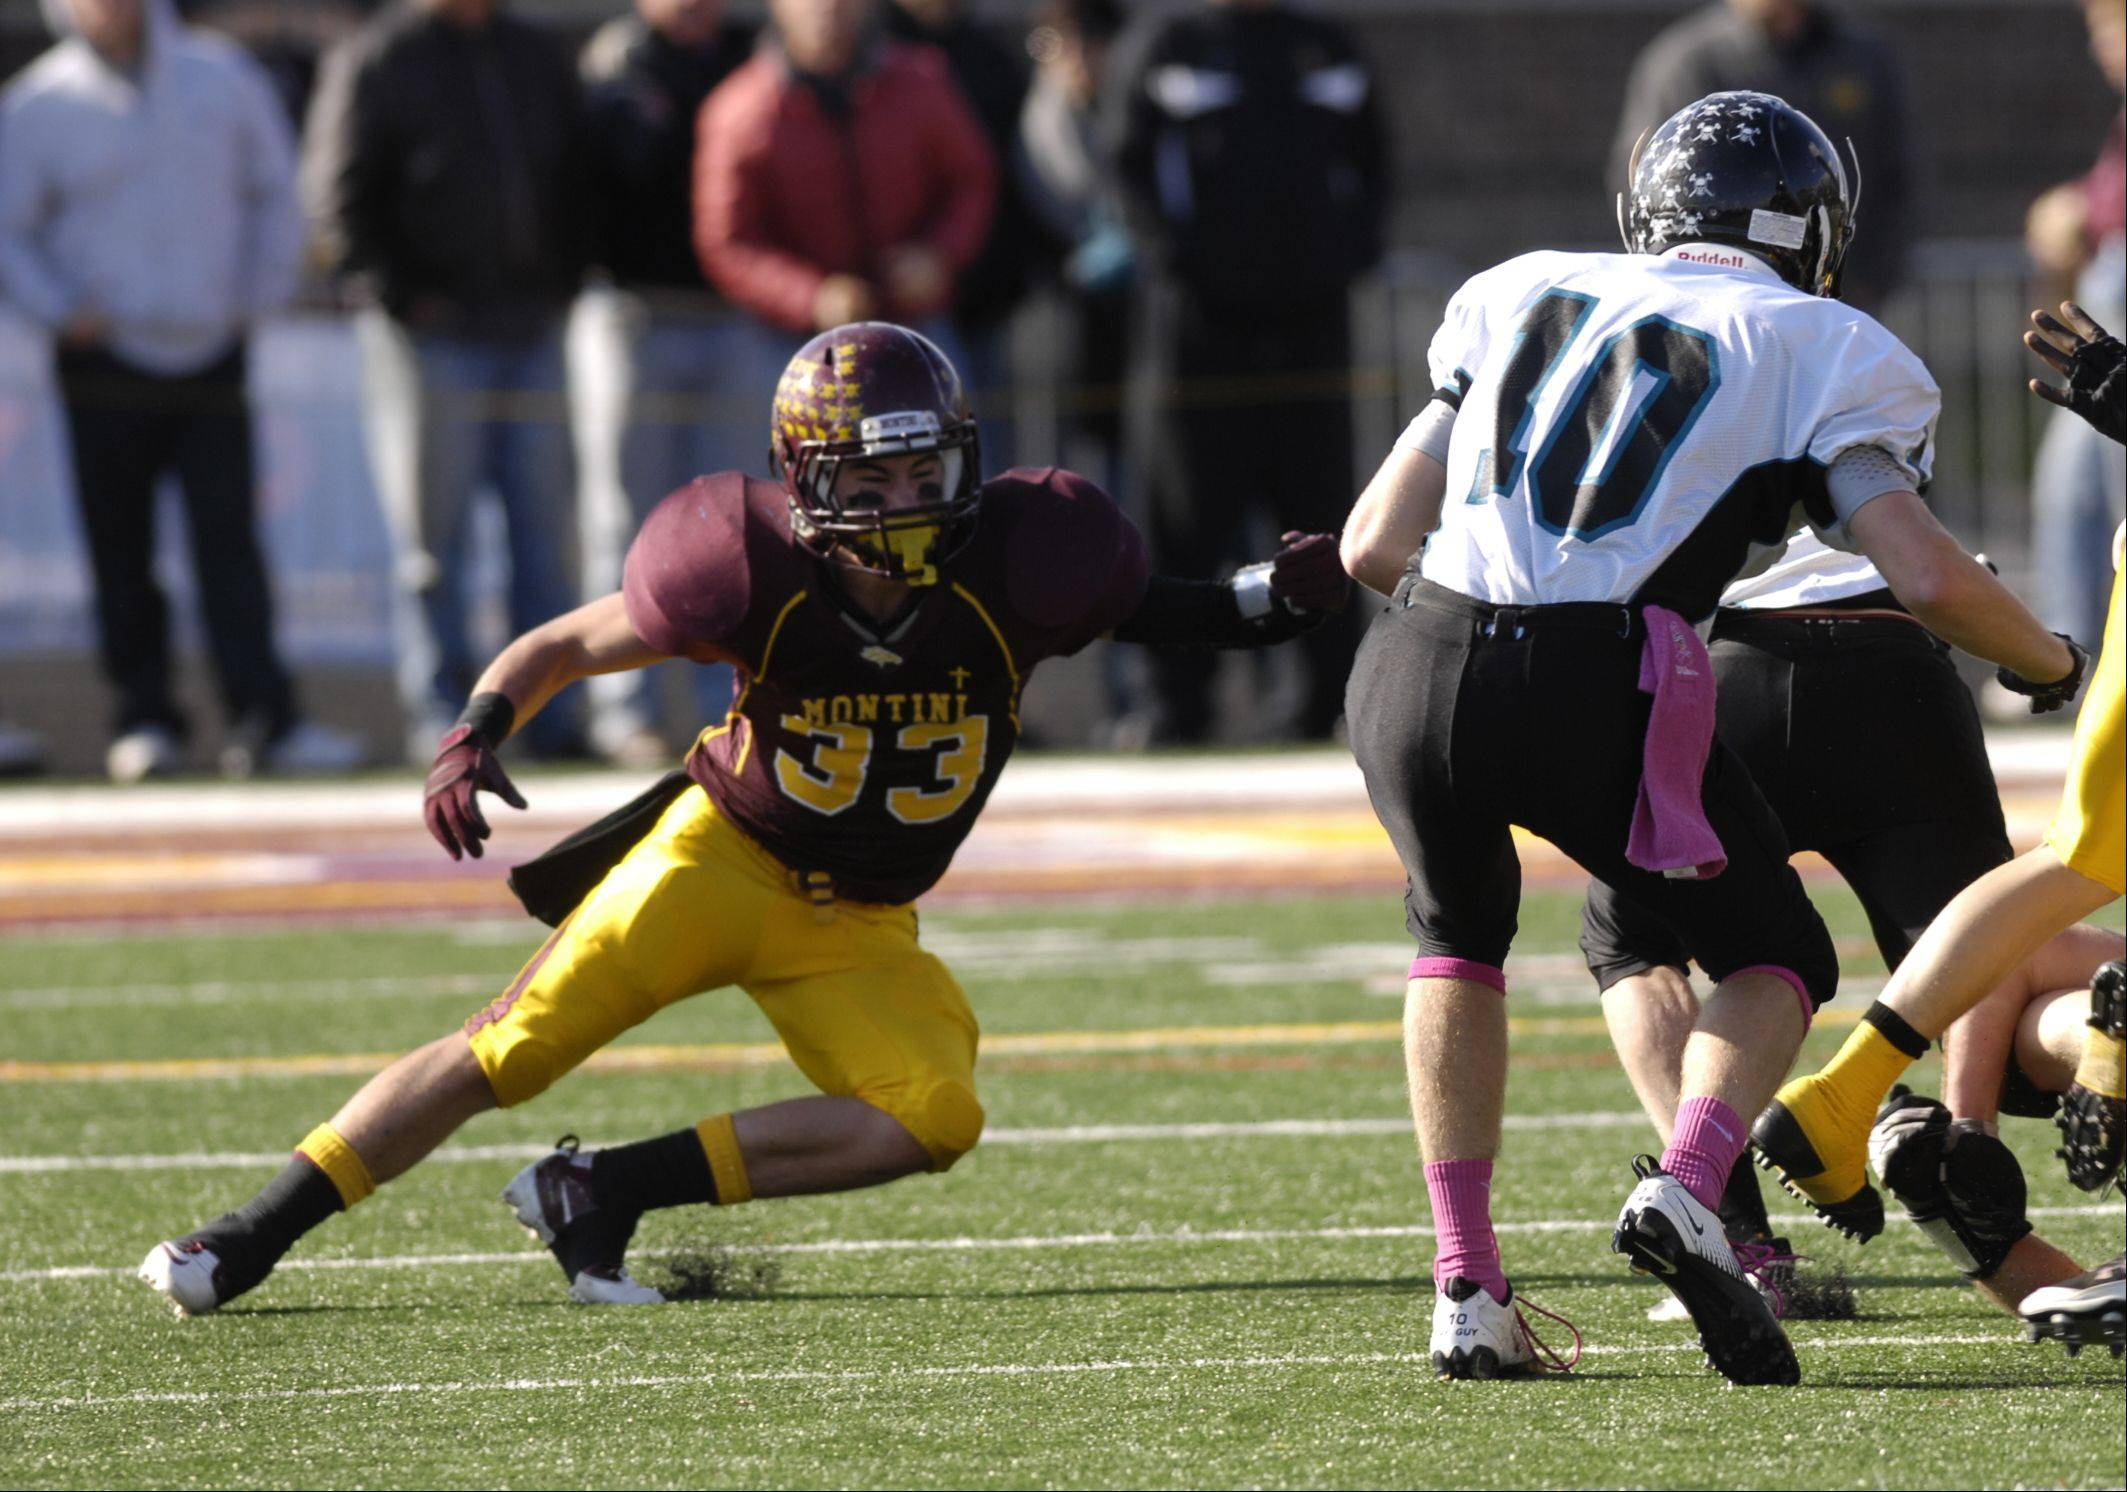 Playoffs - Round One- Woodstock North High School at Montini Catholic High School in Lombard football playoffs Saturday, October 29.